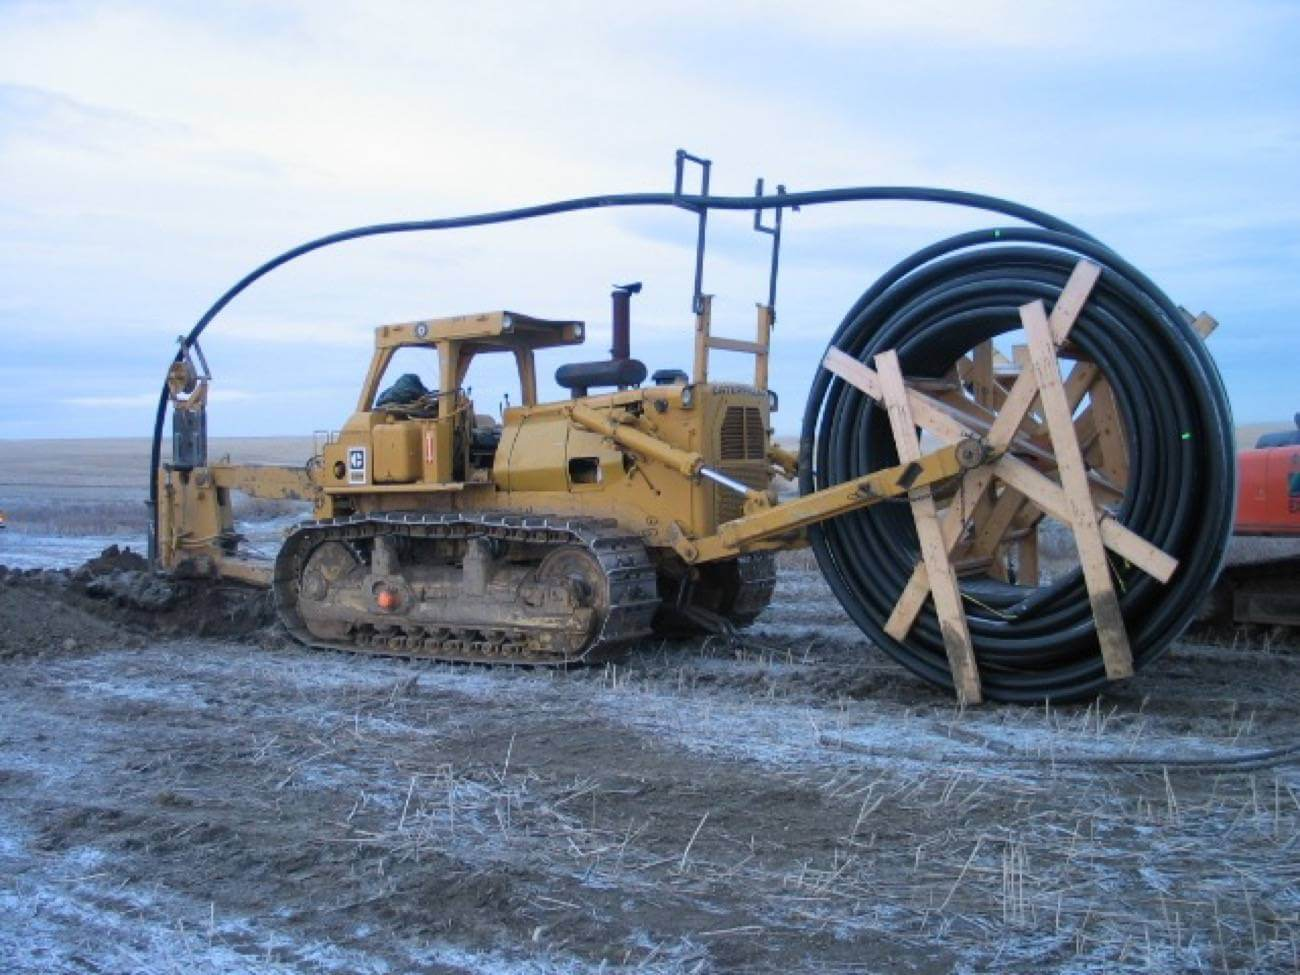 Underground cable tractor with spool